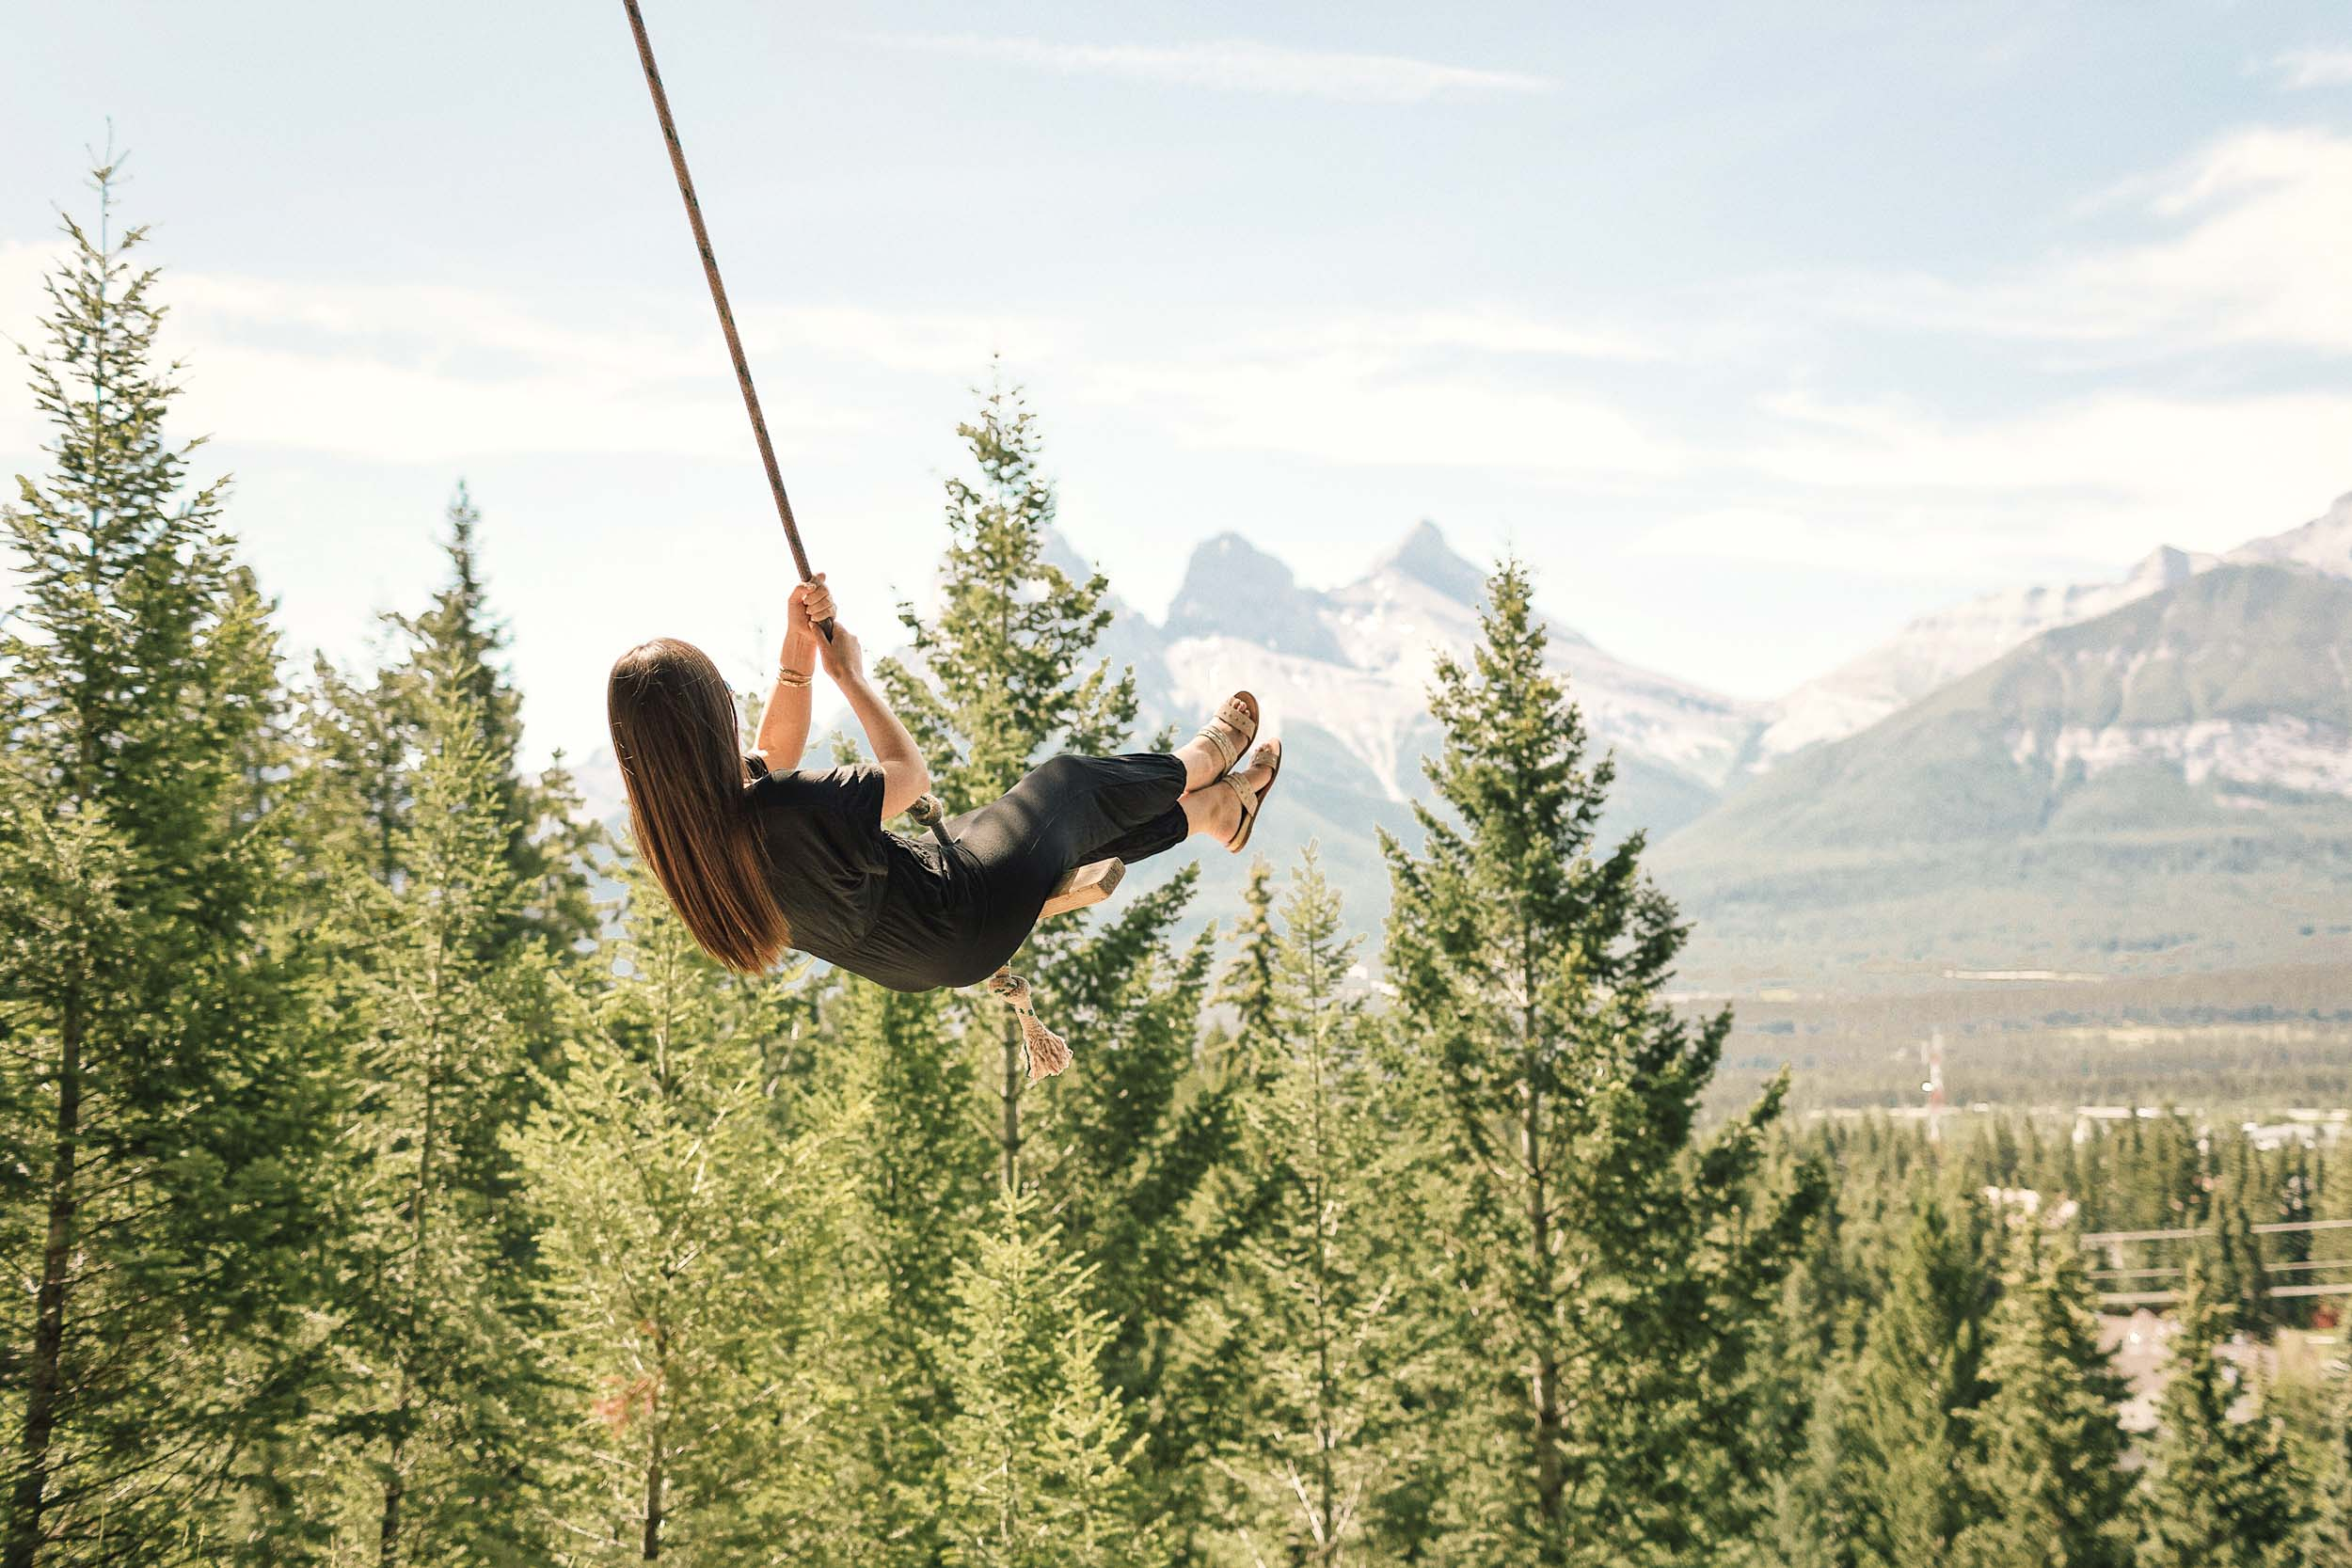 The most Instagrammable place in Banff National Park, Alberta, Canada: the Canmore rope swing